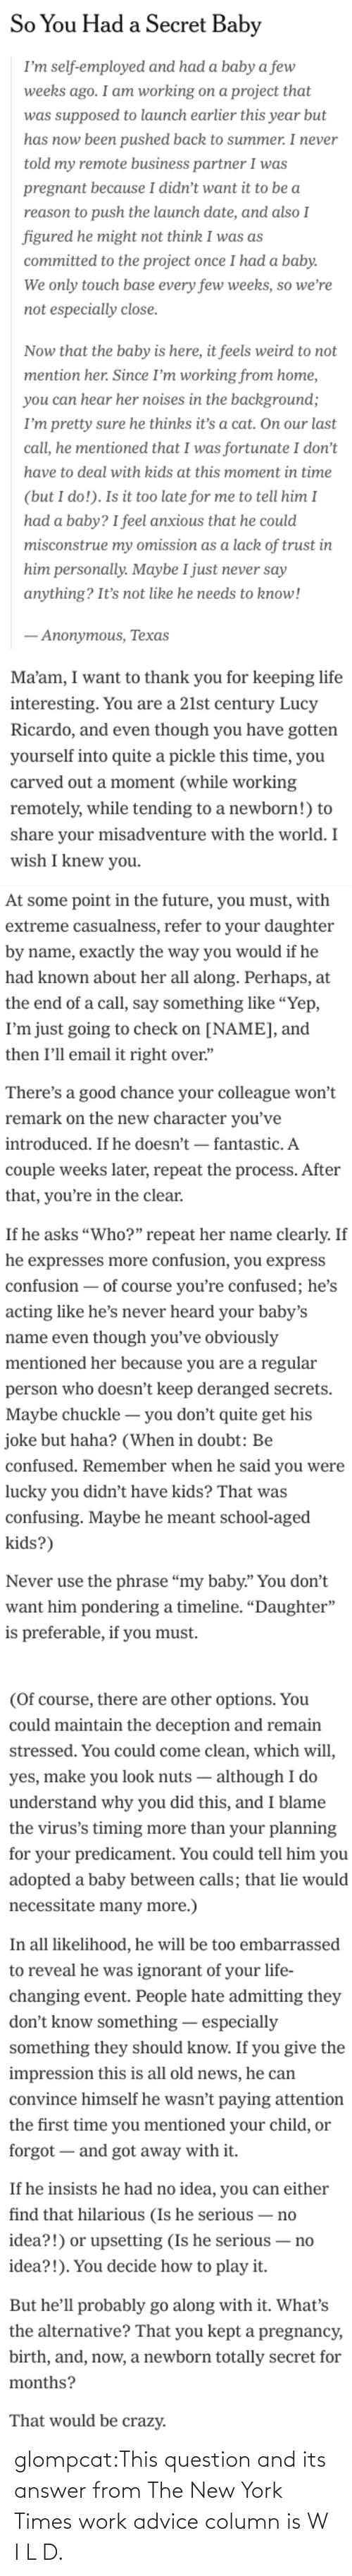 Advice, Click, and New York: glompcat:This question and its answer from The New York Times work advice column is W I L D.